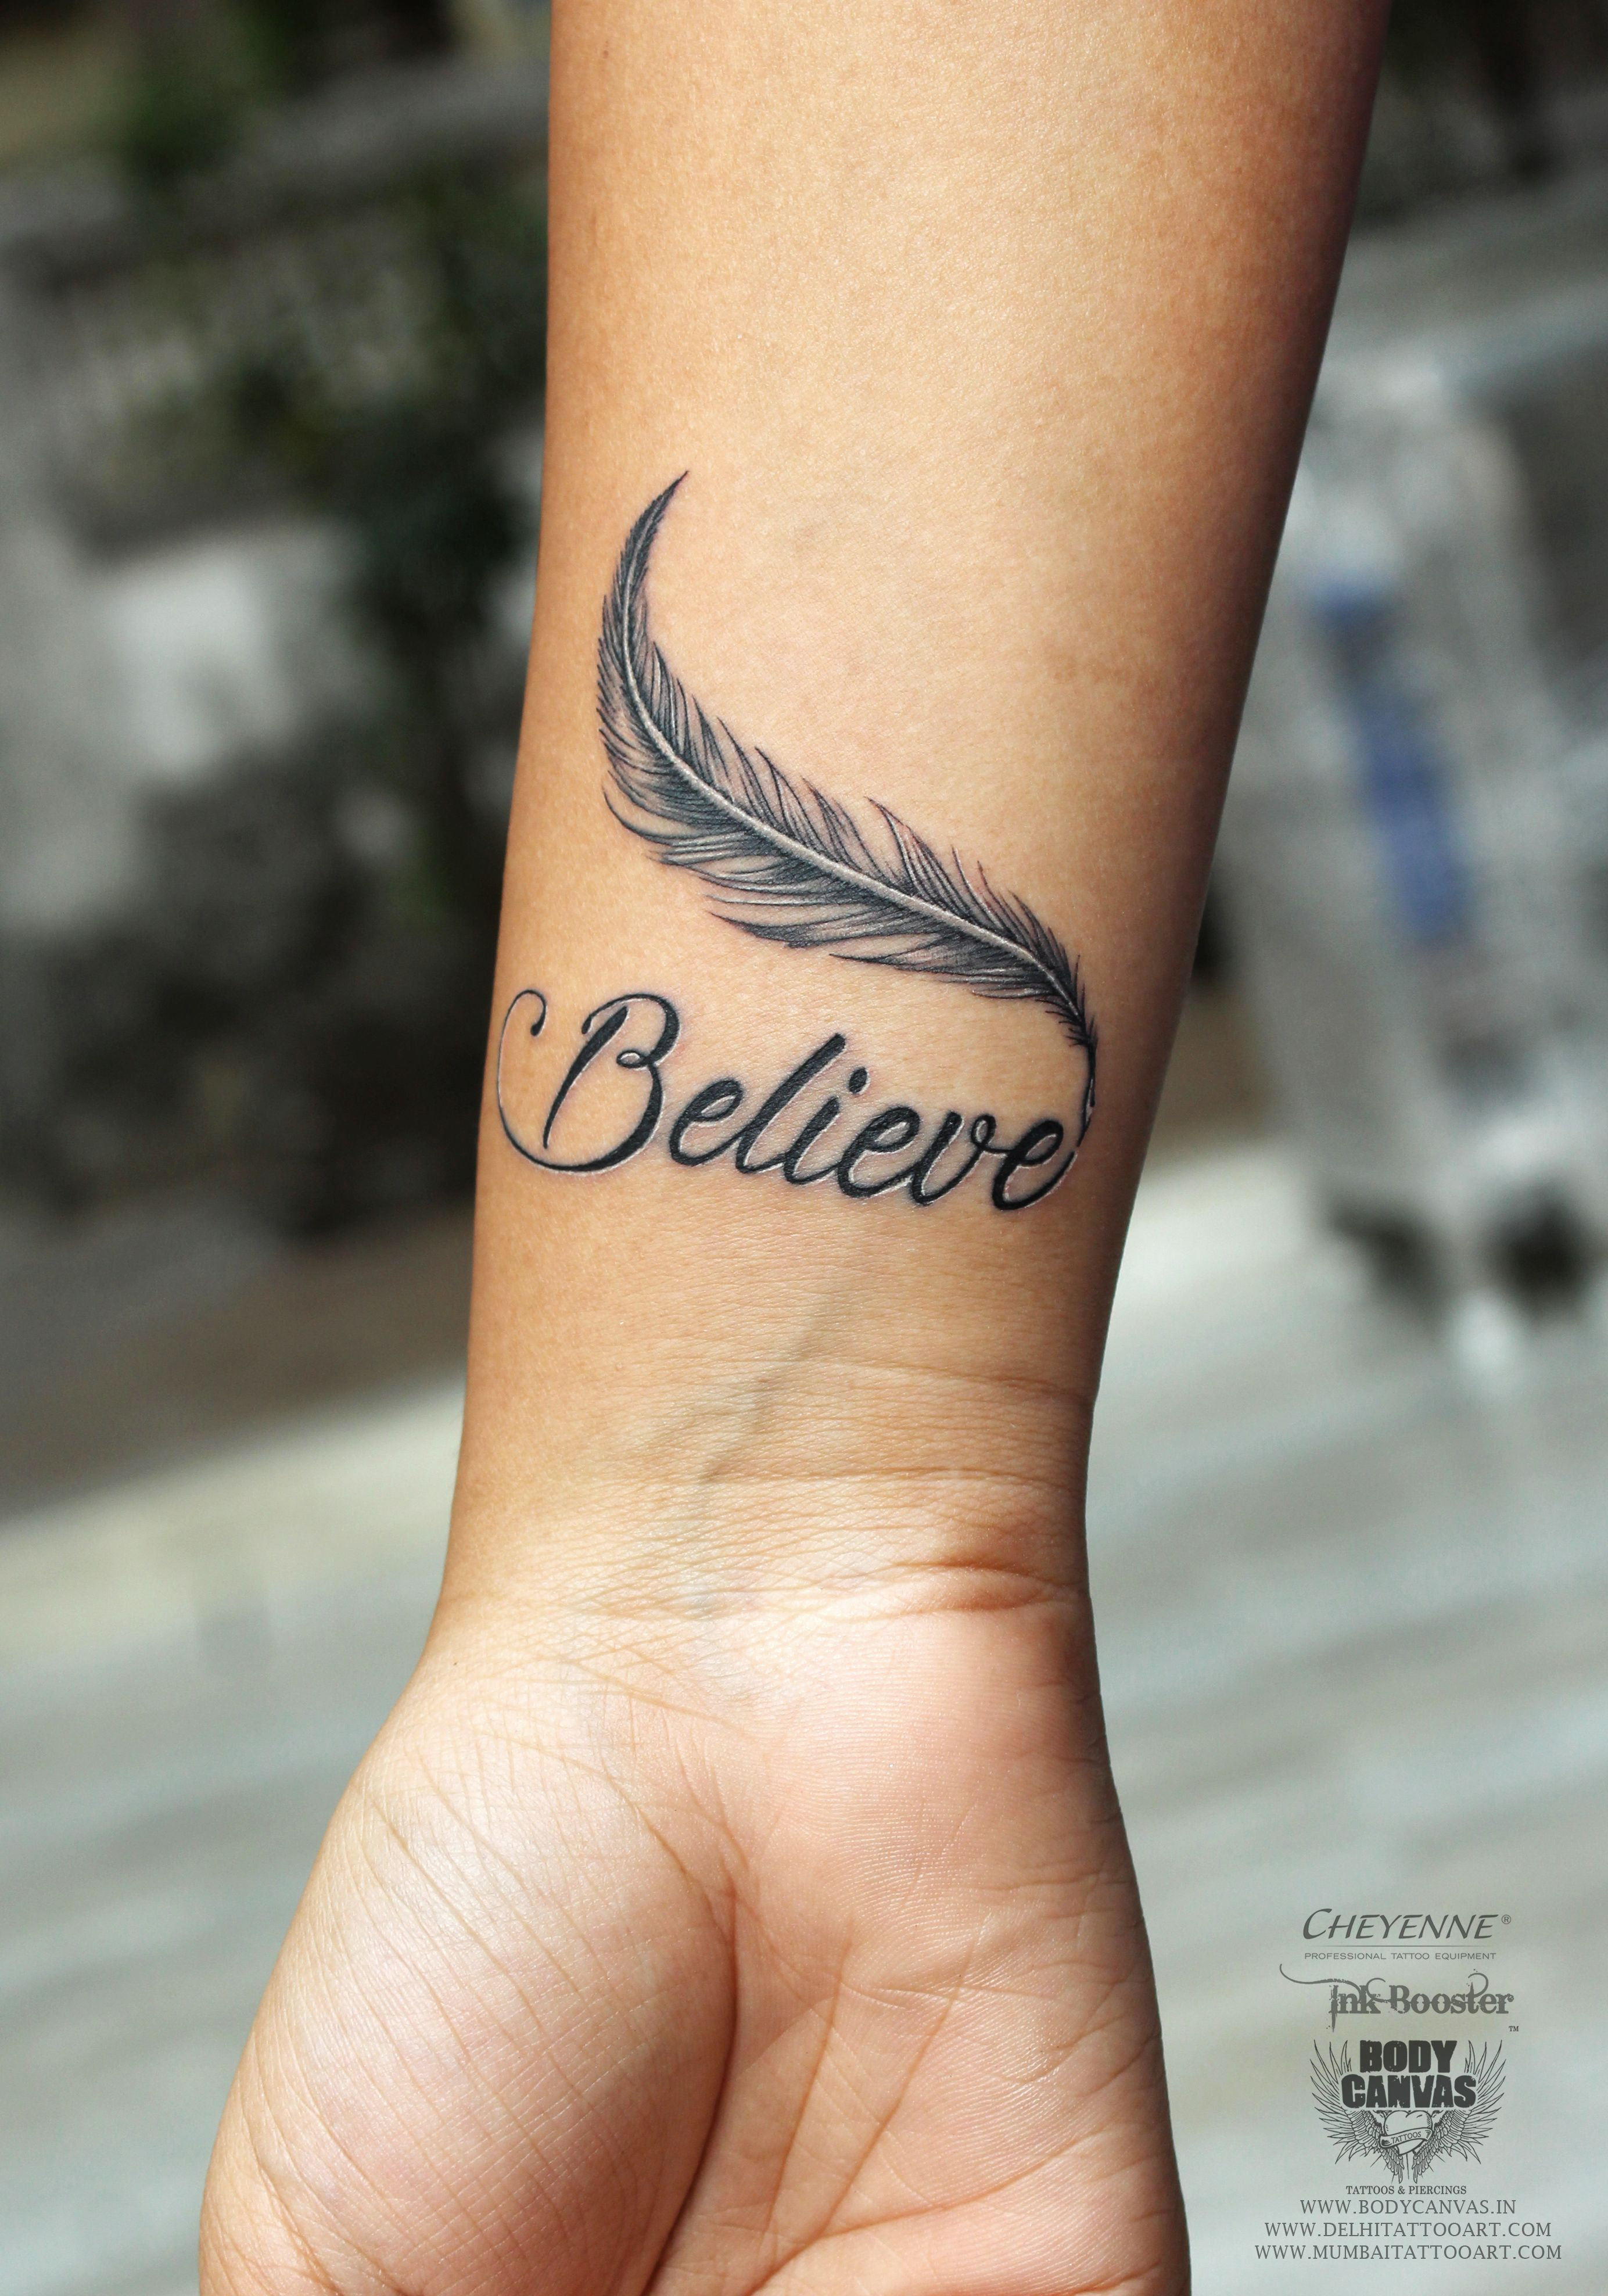 Believe Tattoo Meaning A Short Word Holds A Strong And Powerful